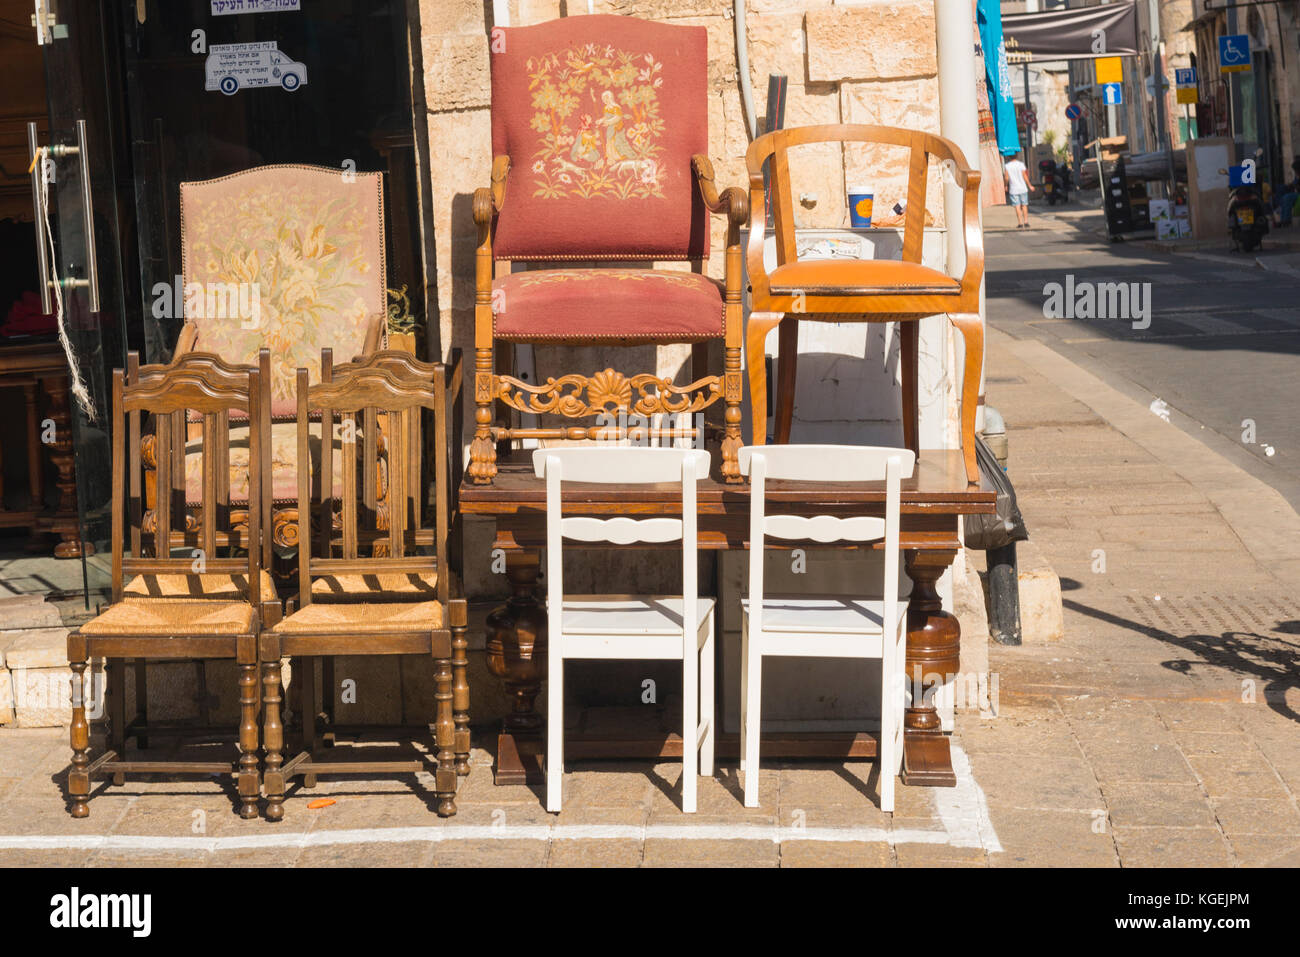 Israel The Holy Land Tel Aviv Jaffa Yafo old market souk collectables wood wooden furniture used secondhand tables - Stock Image